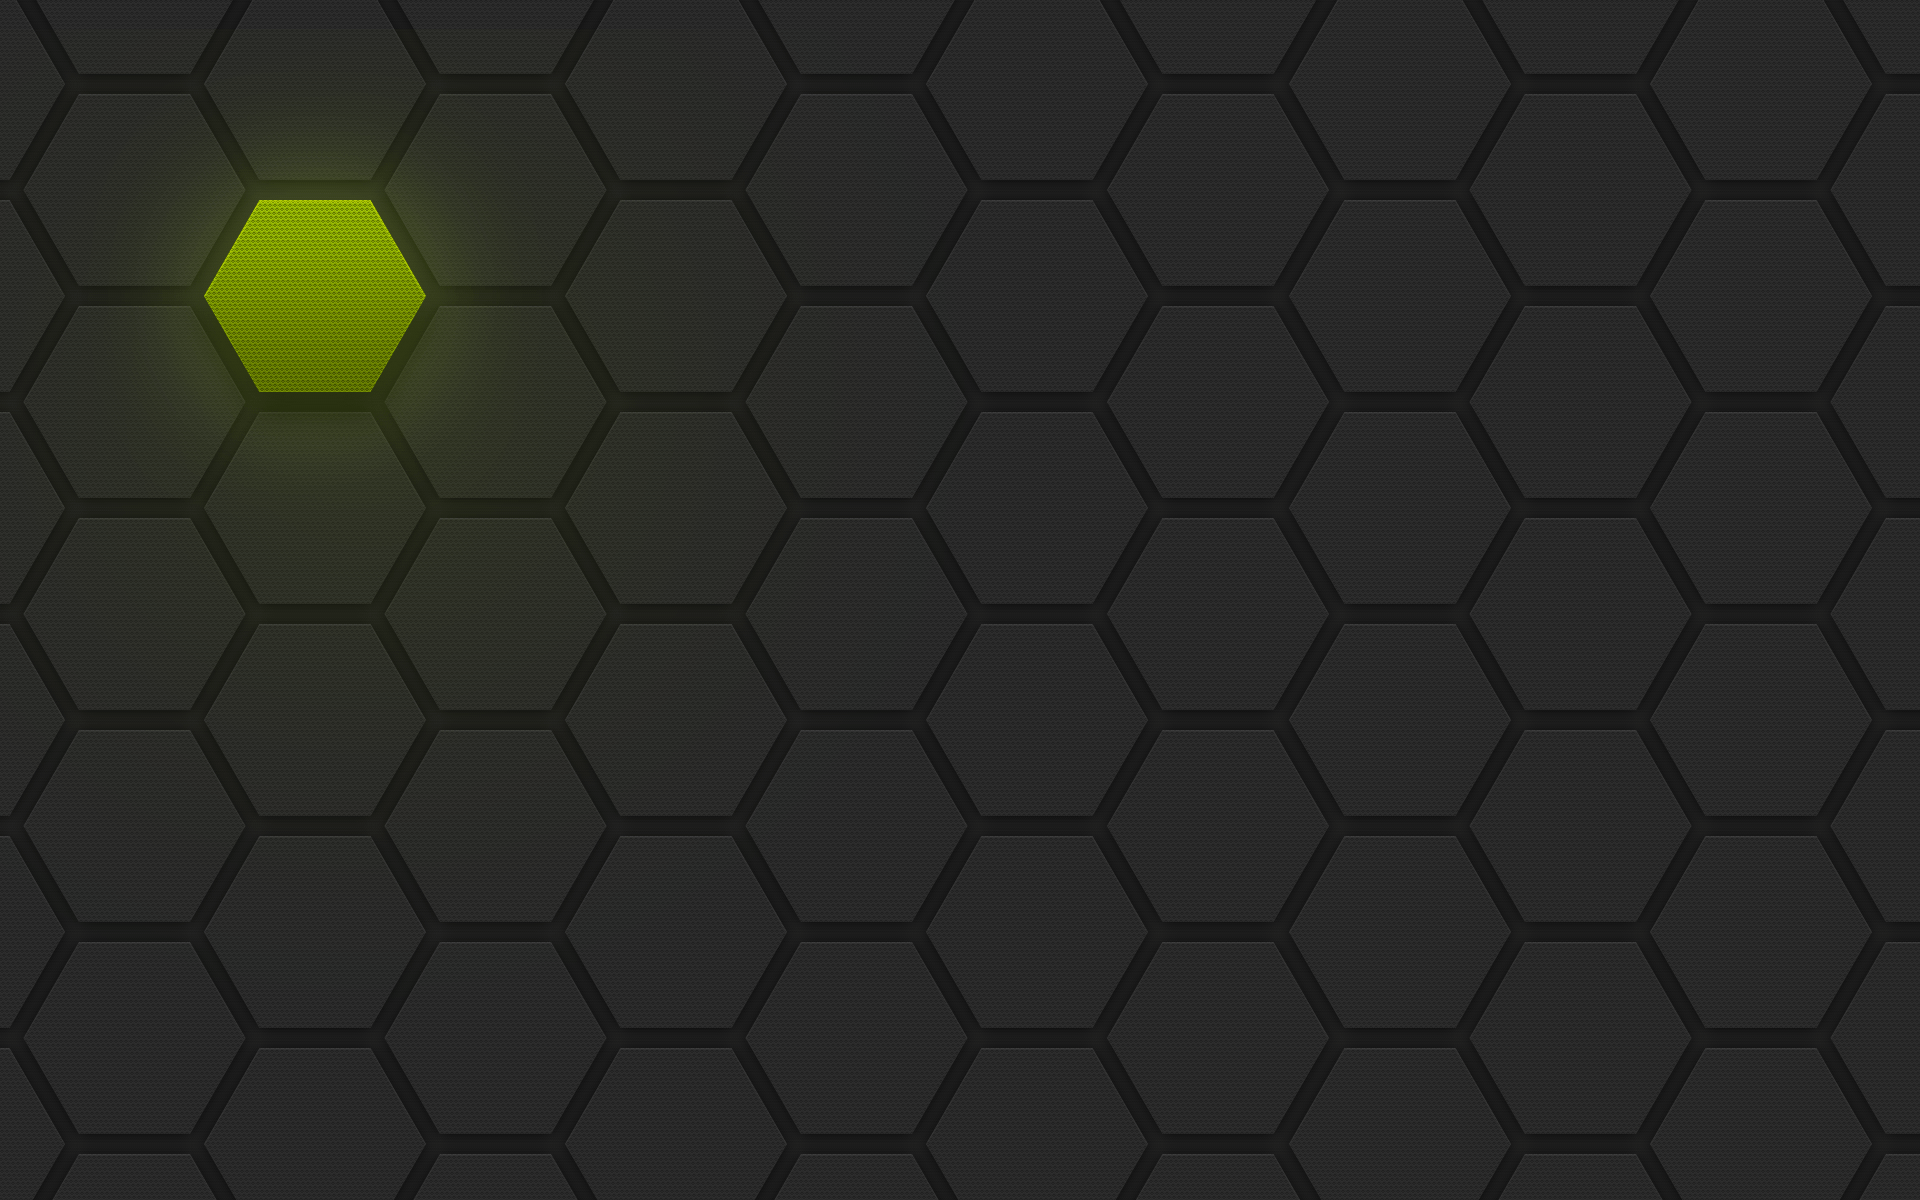 Hexagon Wallpapers - WallpaperSafari